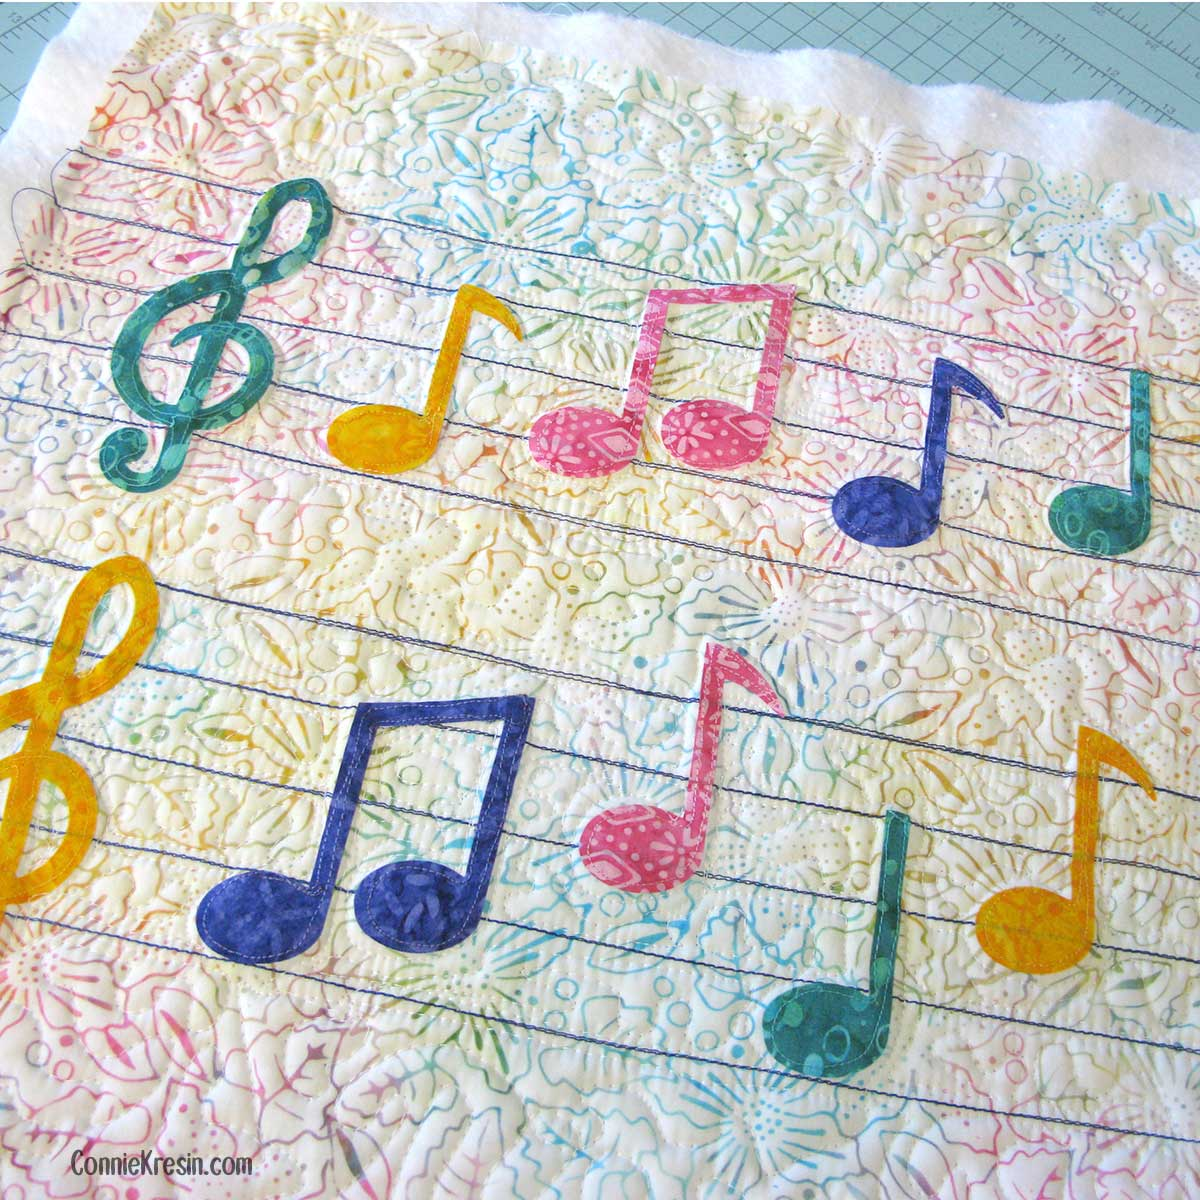 Quilting on the Musical Notes pillow